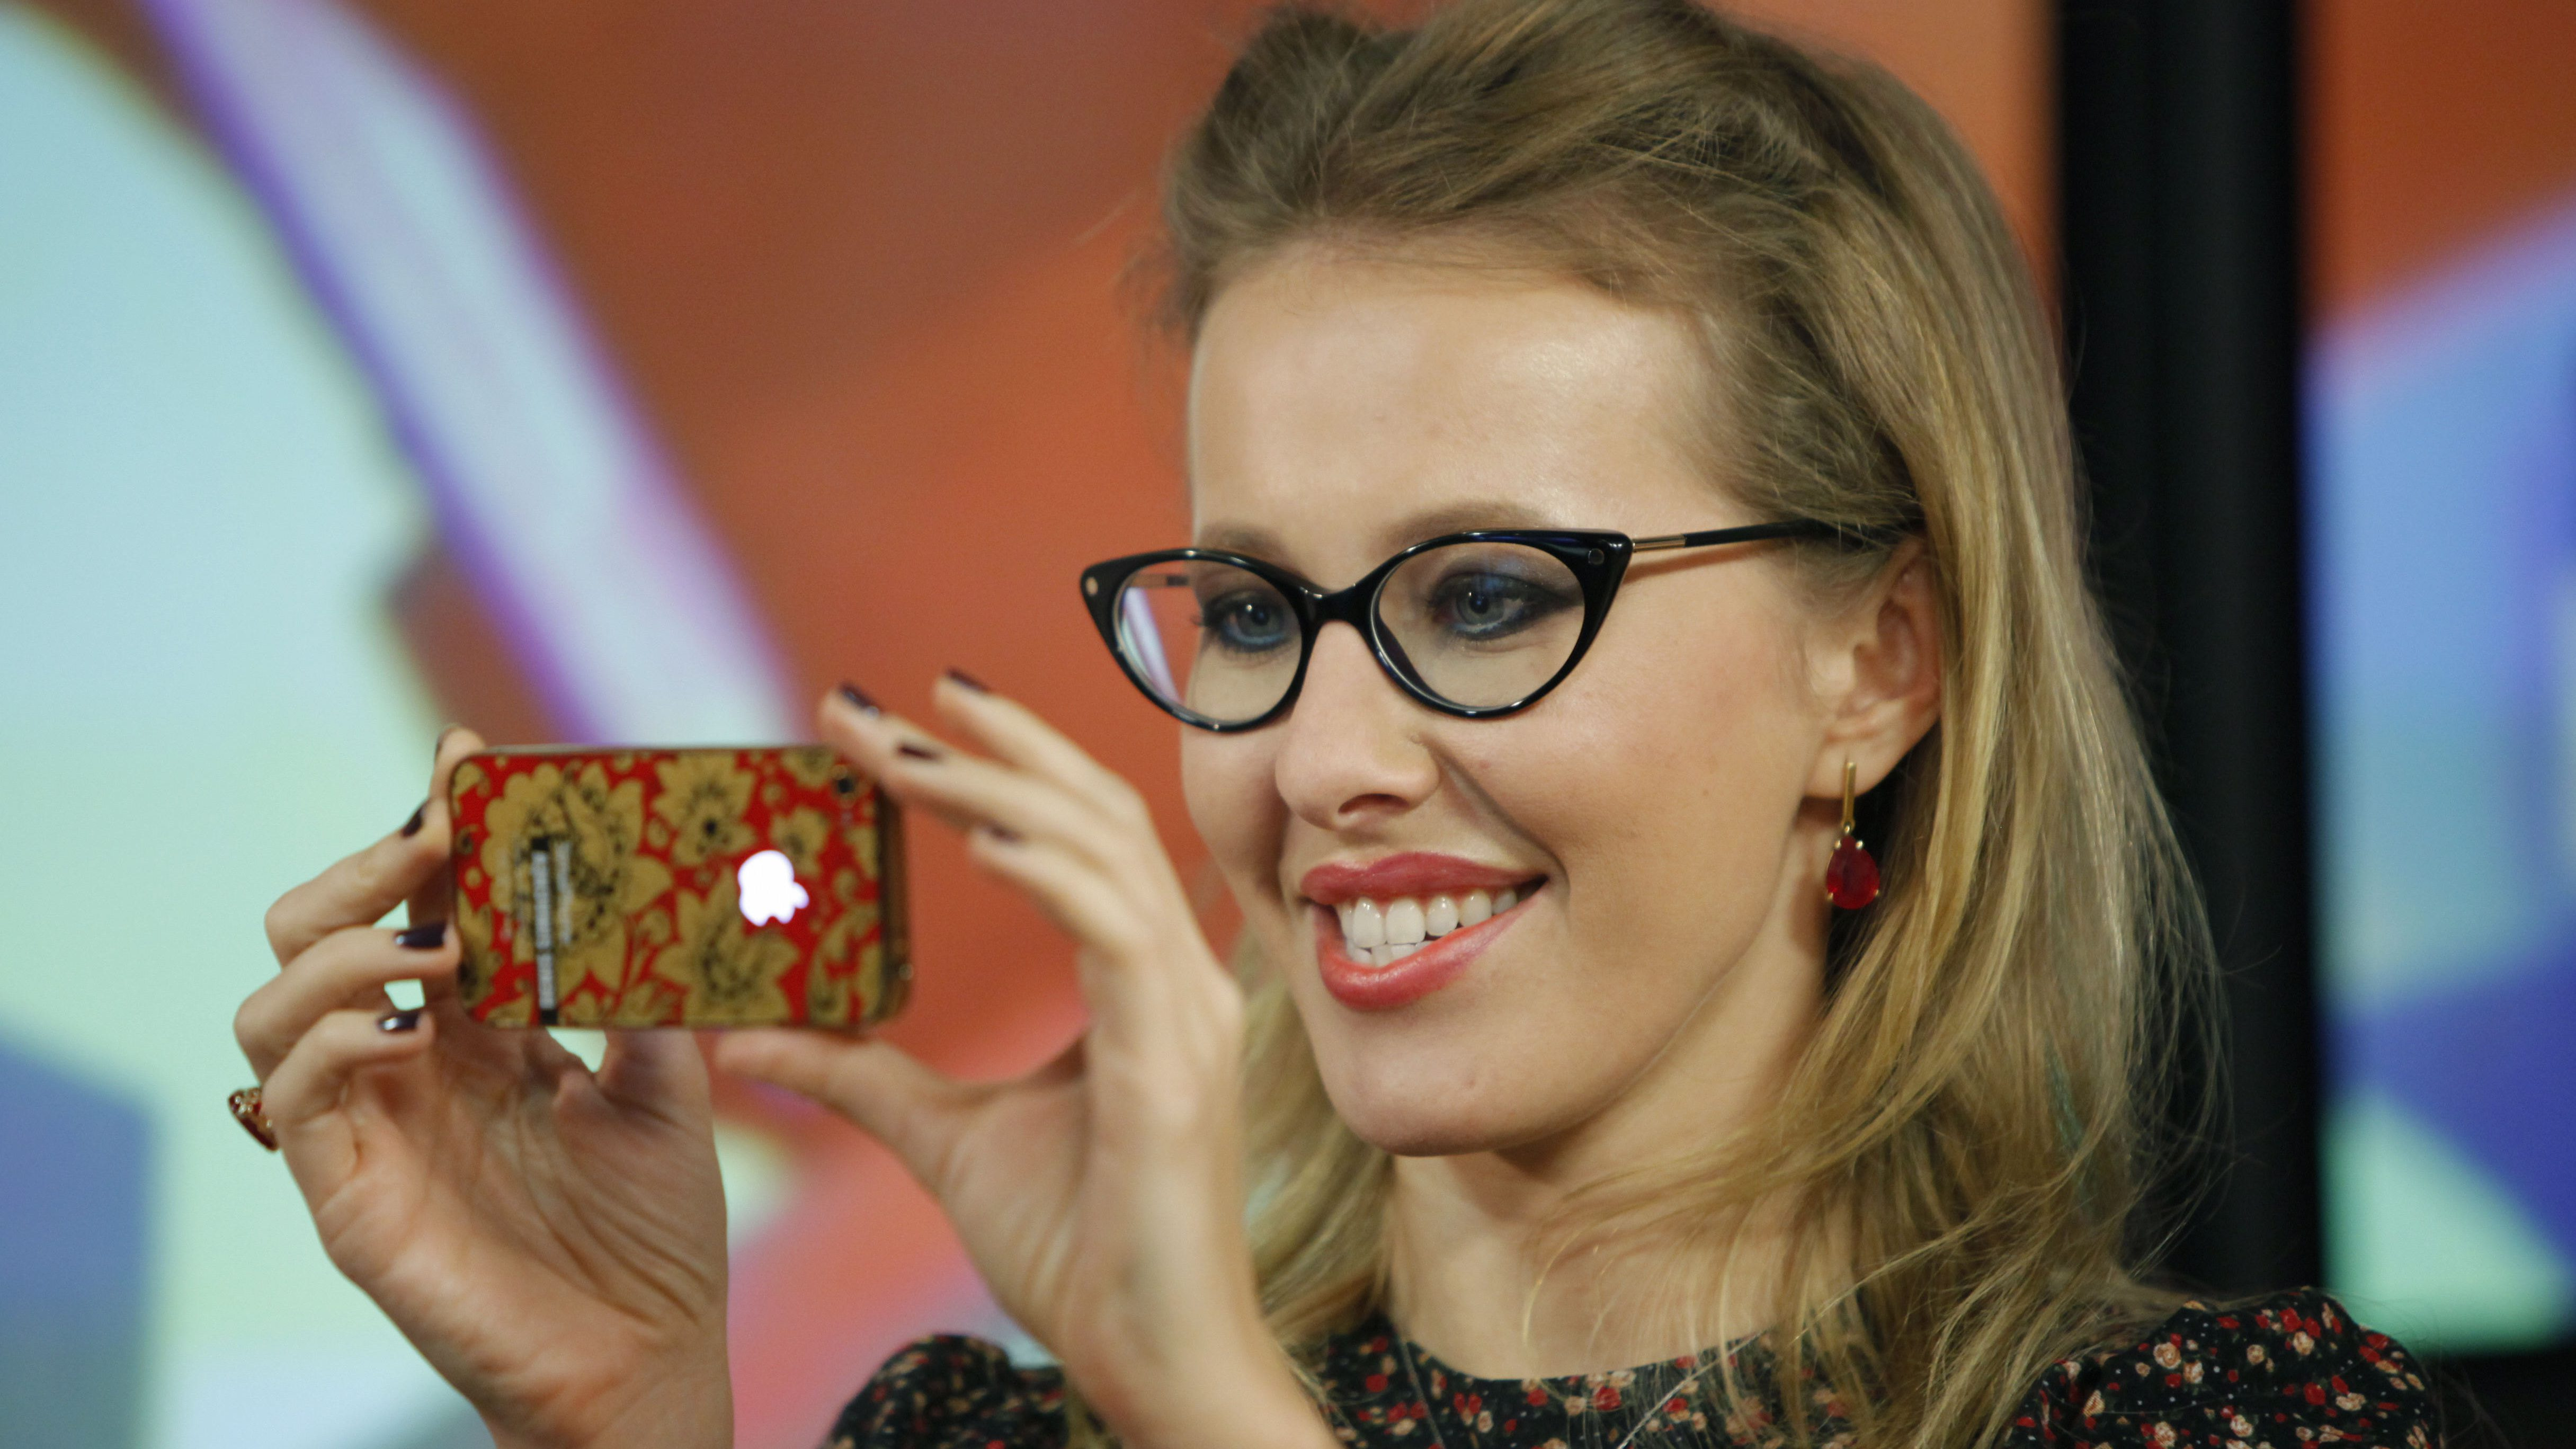 "FILE - In this Wednesday, Jan. 18, 2012 file photo Russian socialite and TV host Kseniya Sobchak, daughter of the late St. Petersburg mayor, Anatoly Sobchak, takes a photo of journalists during her interview in the Echo Moskvy (Echo of Moscow) radio station in Moscow, Russia. ""I'm Ksenia Sobchak, and I've got something to lose. But I'm here."" This is what the 30-year-old blond socialite and TV personality said when she began her unlikely foray into political activism by taking the stage at a huge anti-Putin rally in December. Once considered untouchable because of her family's close personal ties to President Vladimir Putin, Sobchak has since found that she does indeed have something to lose, as her apartment has been raided by police and she has been called in for interrogation. It has been a quick change of fortune for Russia's It Girl, who like many Russians of her generation experienced a civic awakening after many years of political passivity. (AP Photo/Alexander Zemlianichenko, file)"